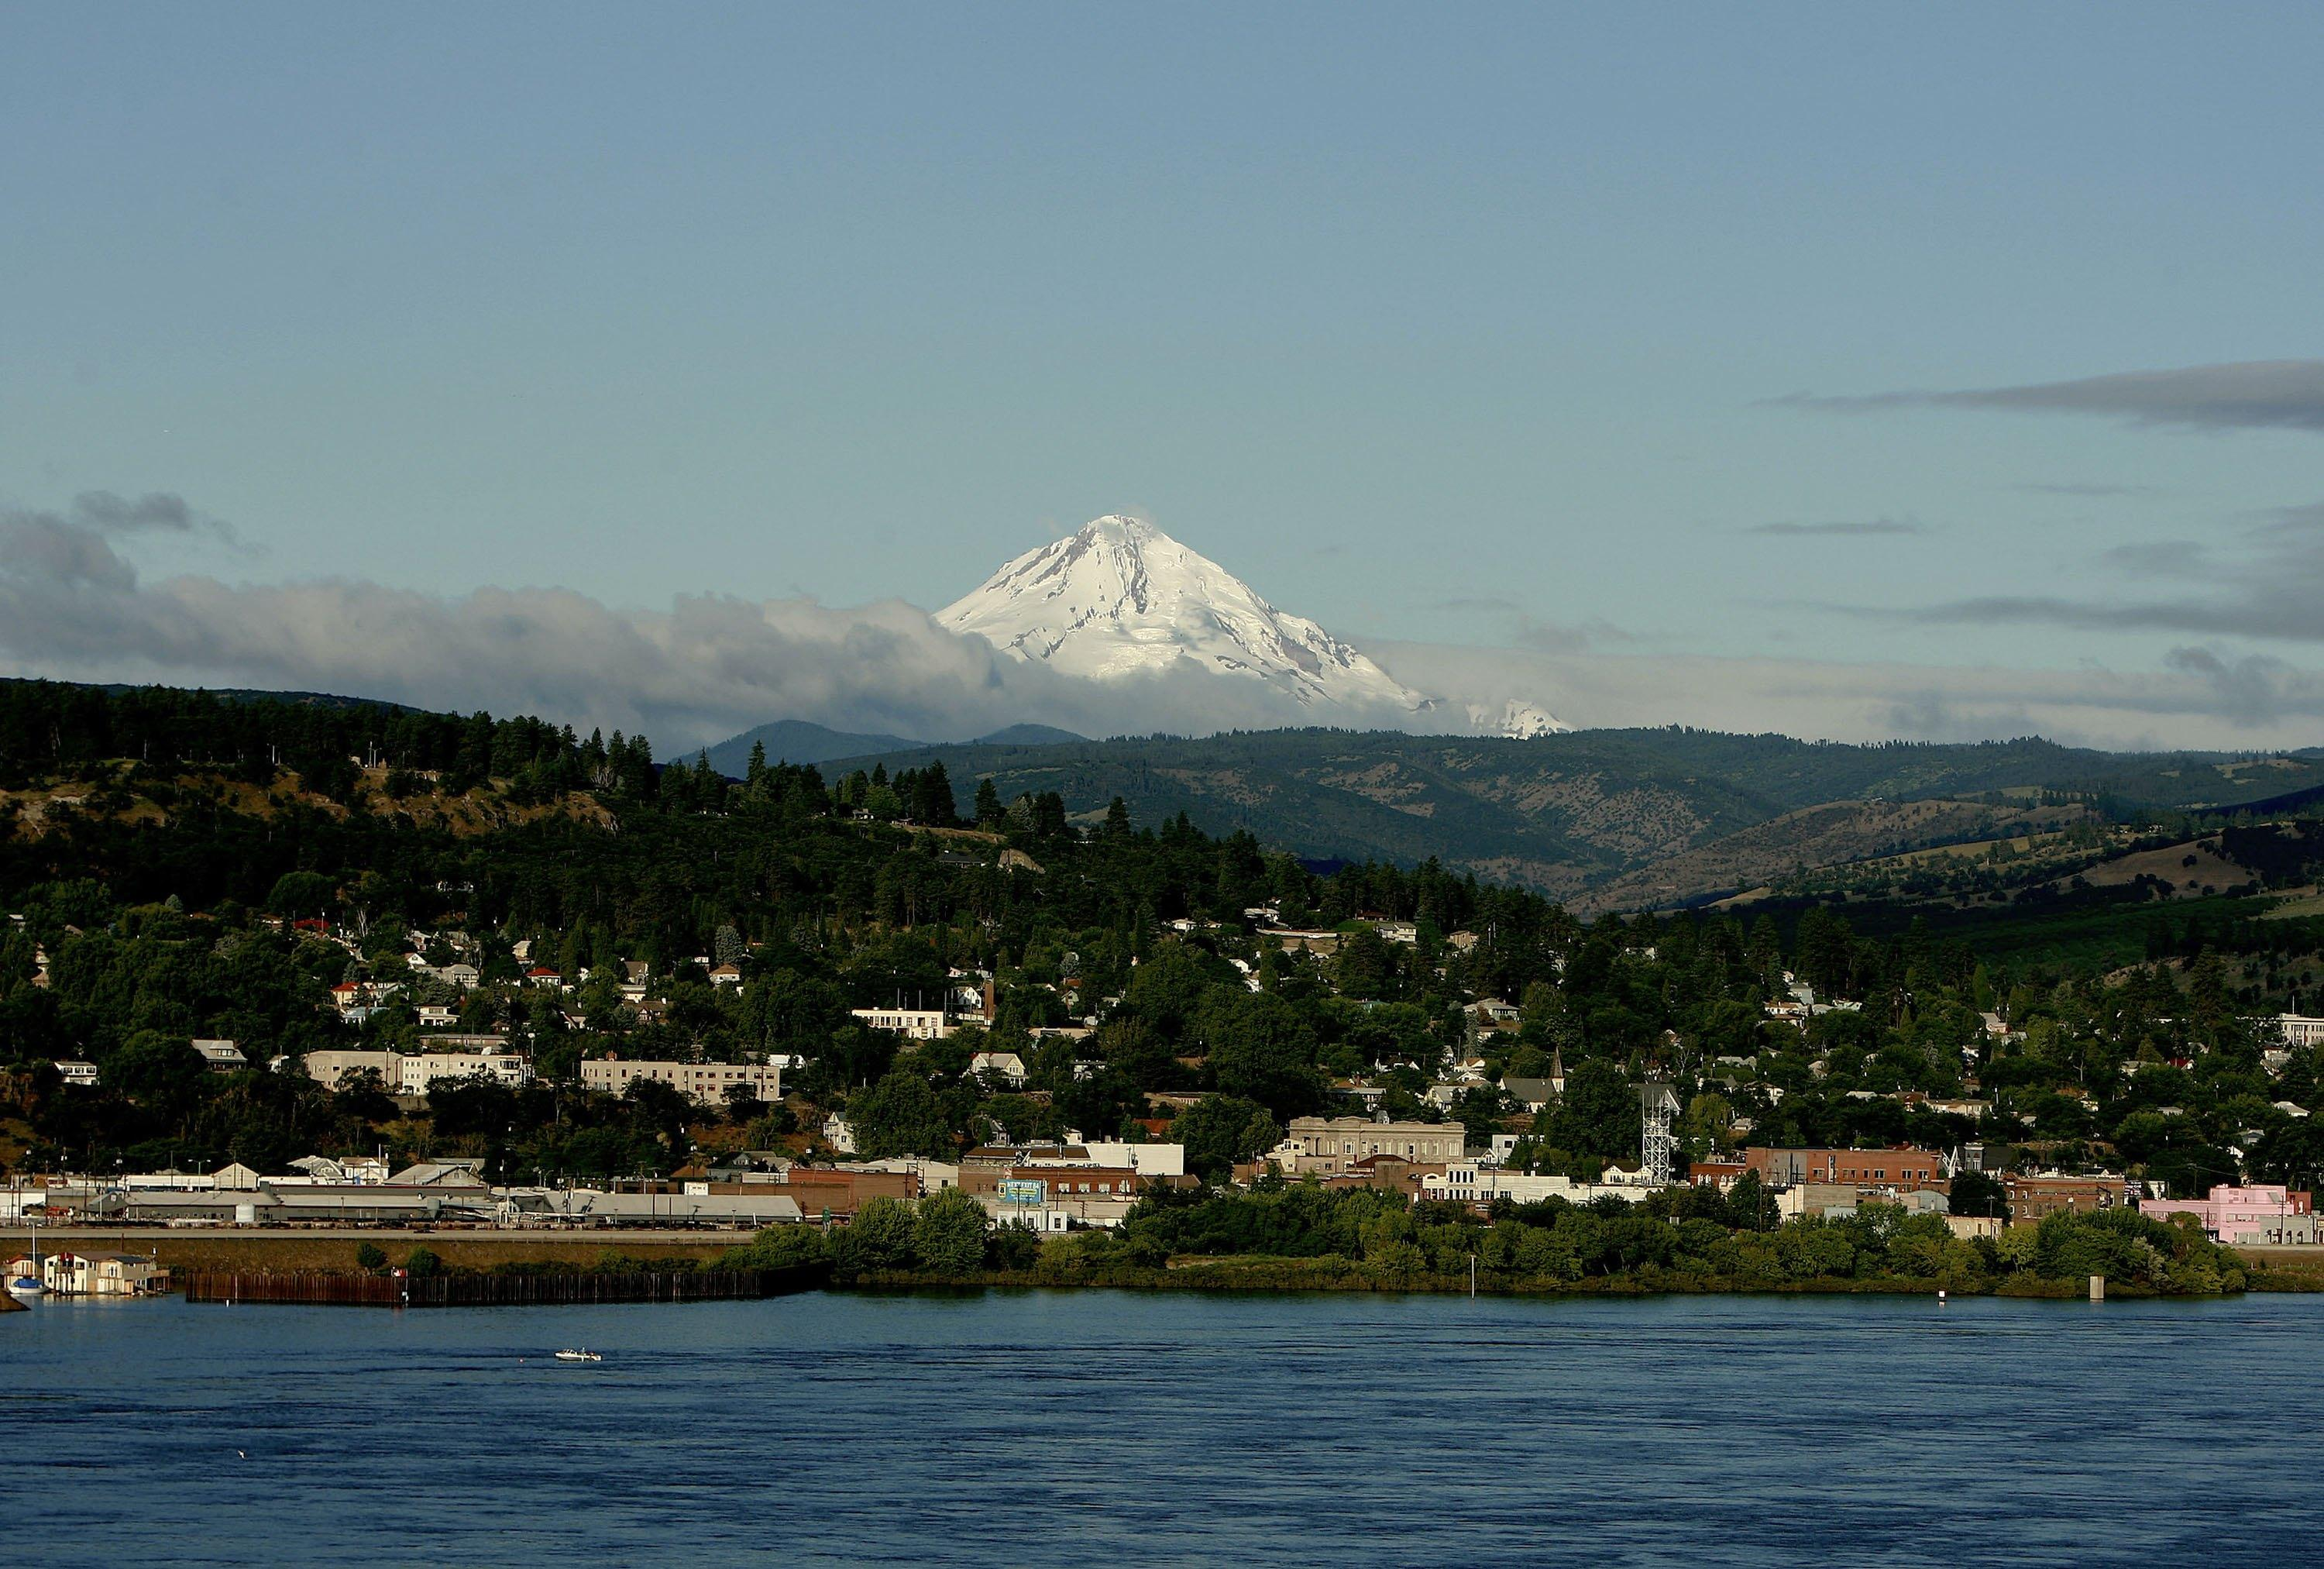 Mt. Hood rises in the background as the town of The Dalles is seen on the Columbia River